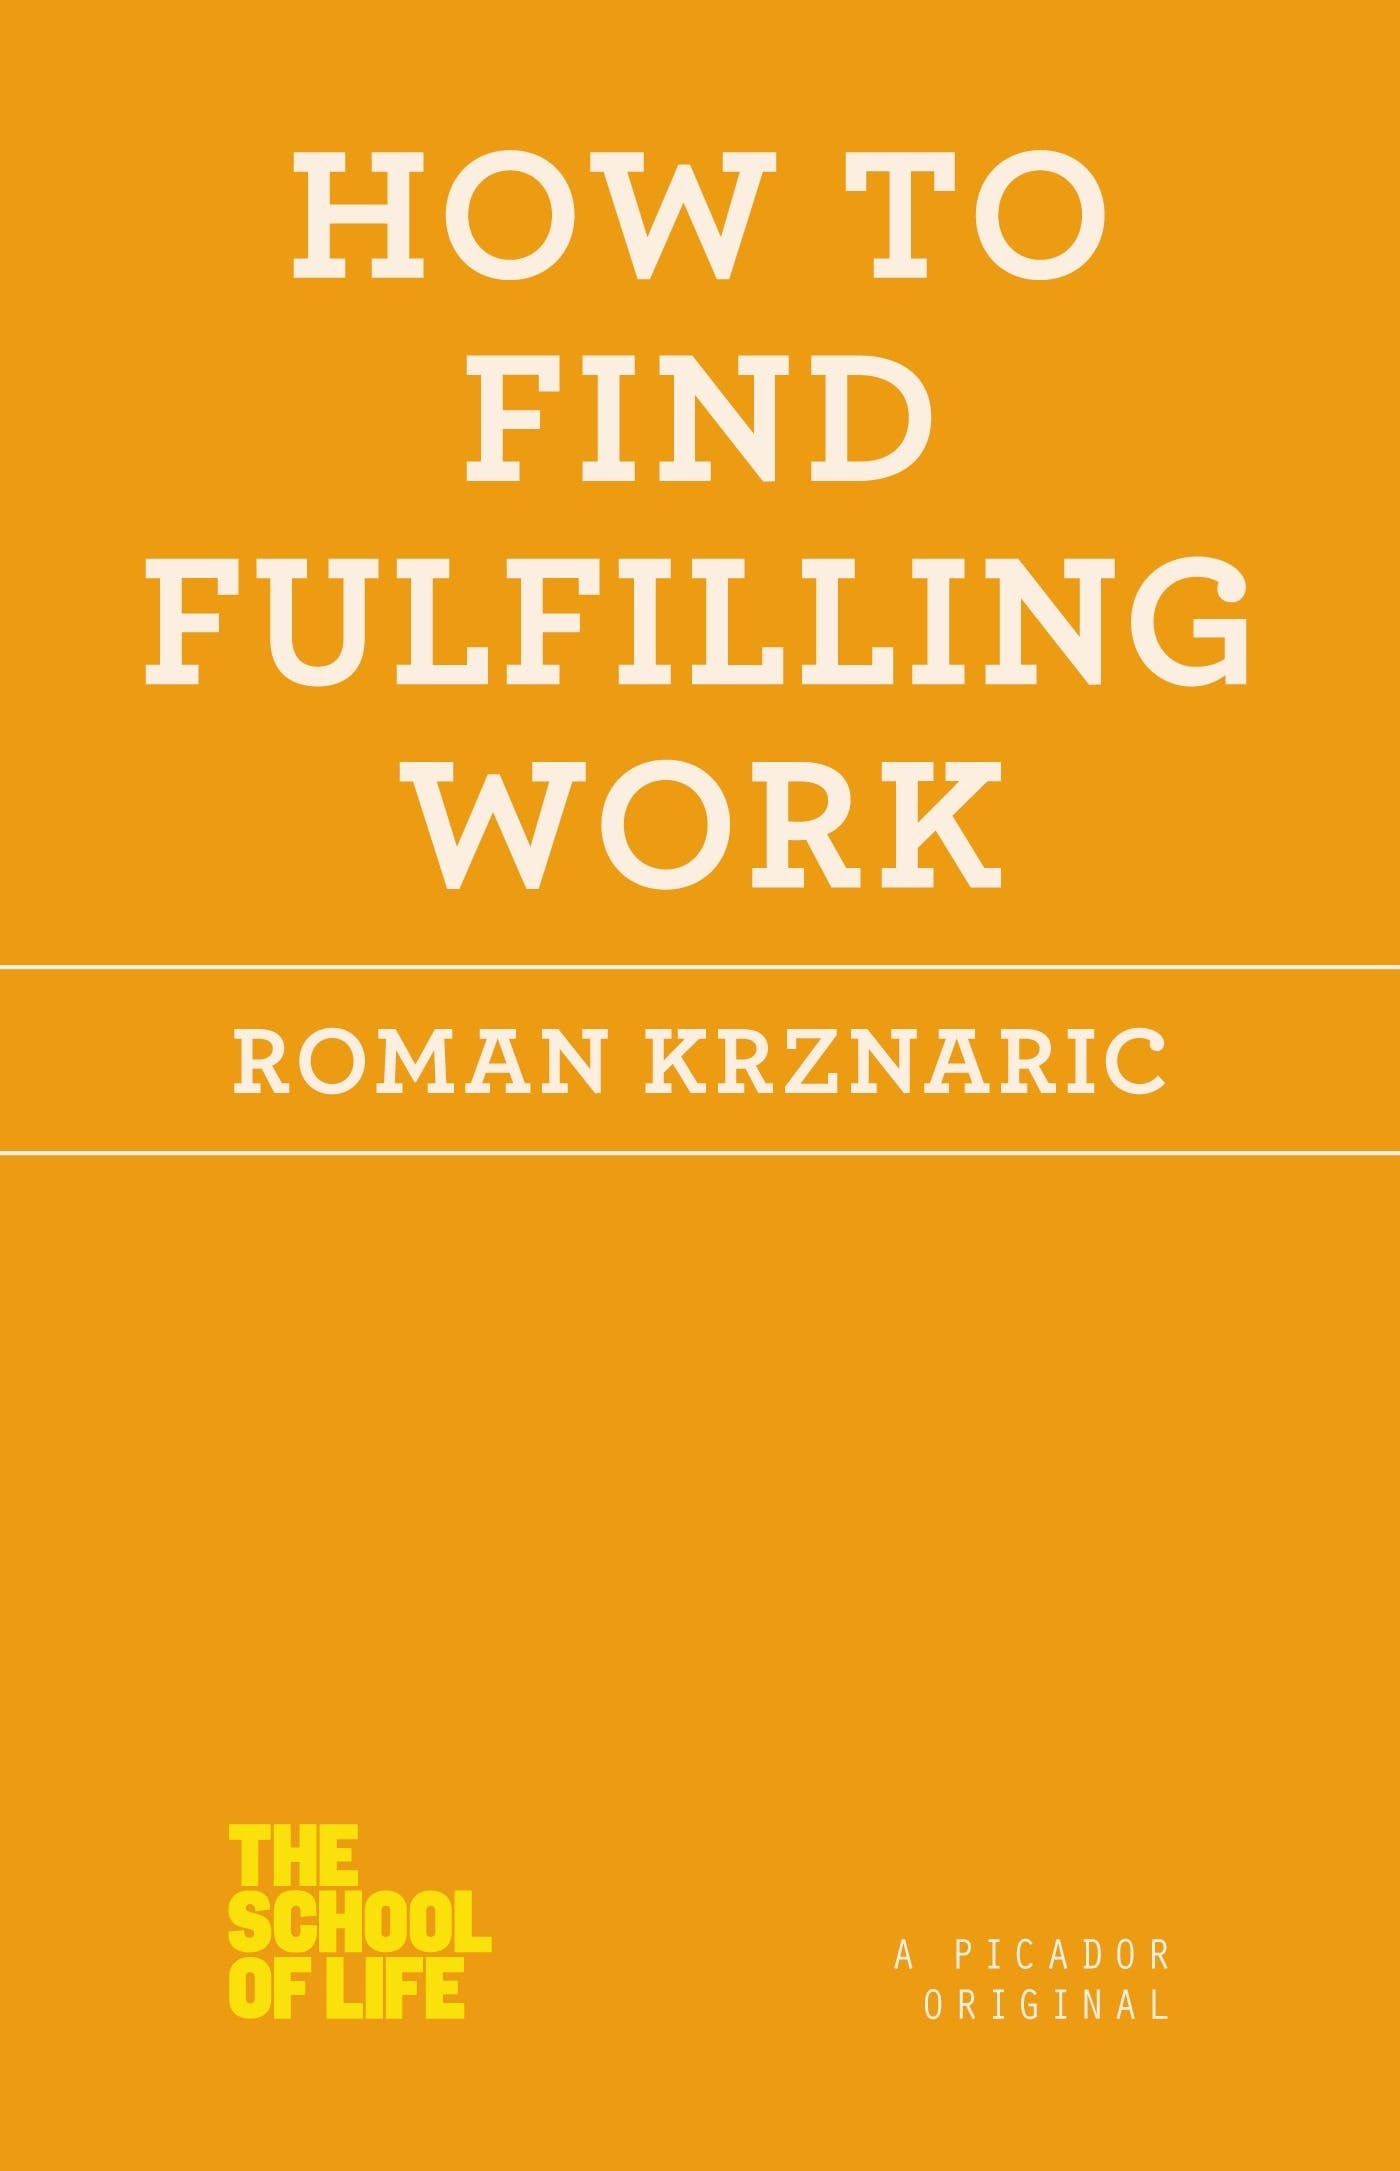 Image of How to Find Fulfilling Work